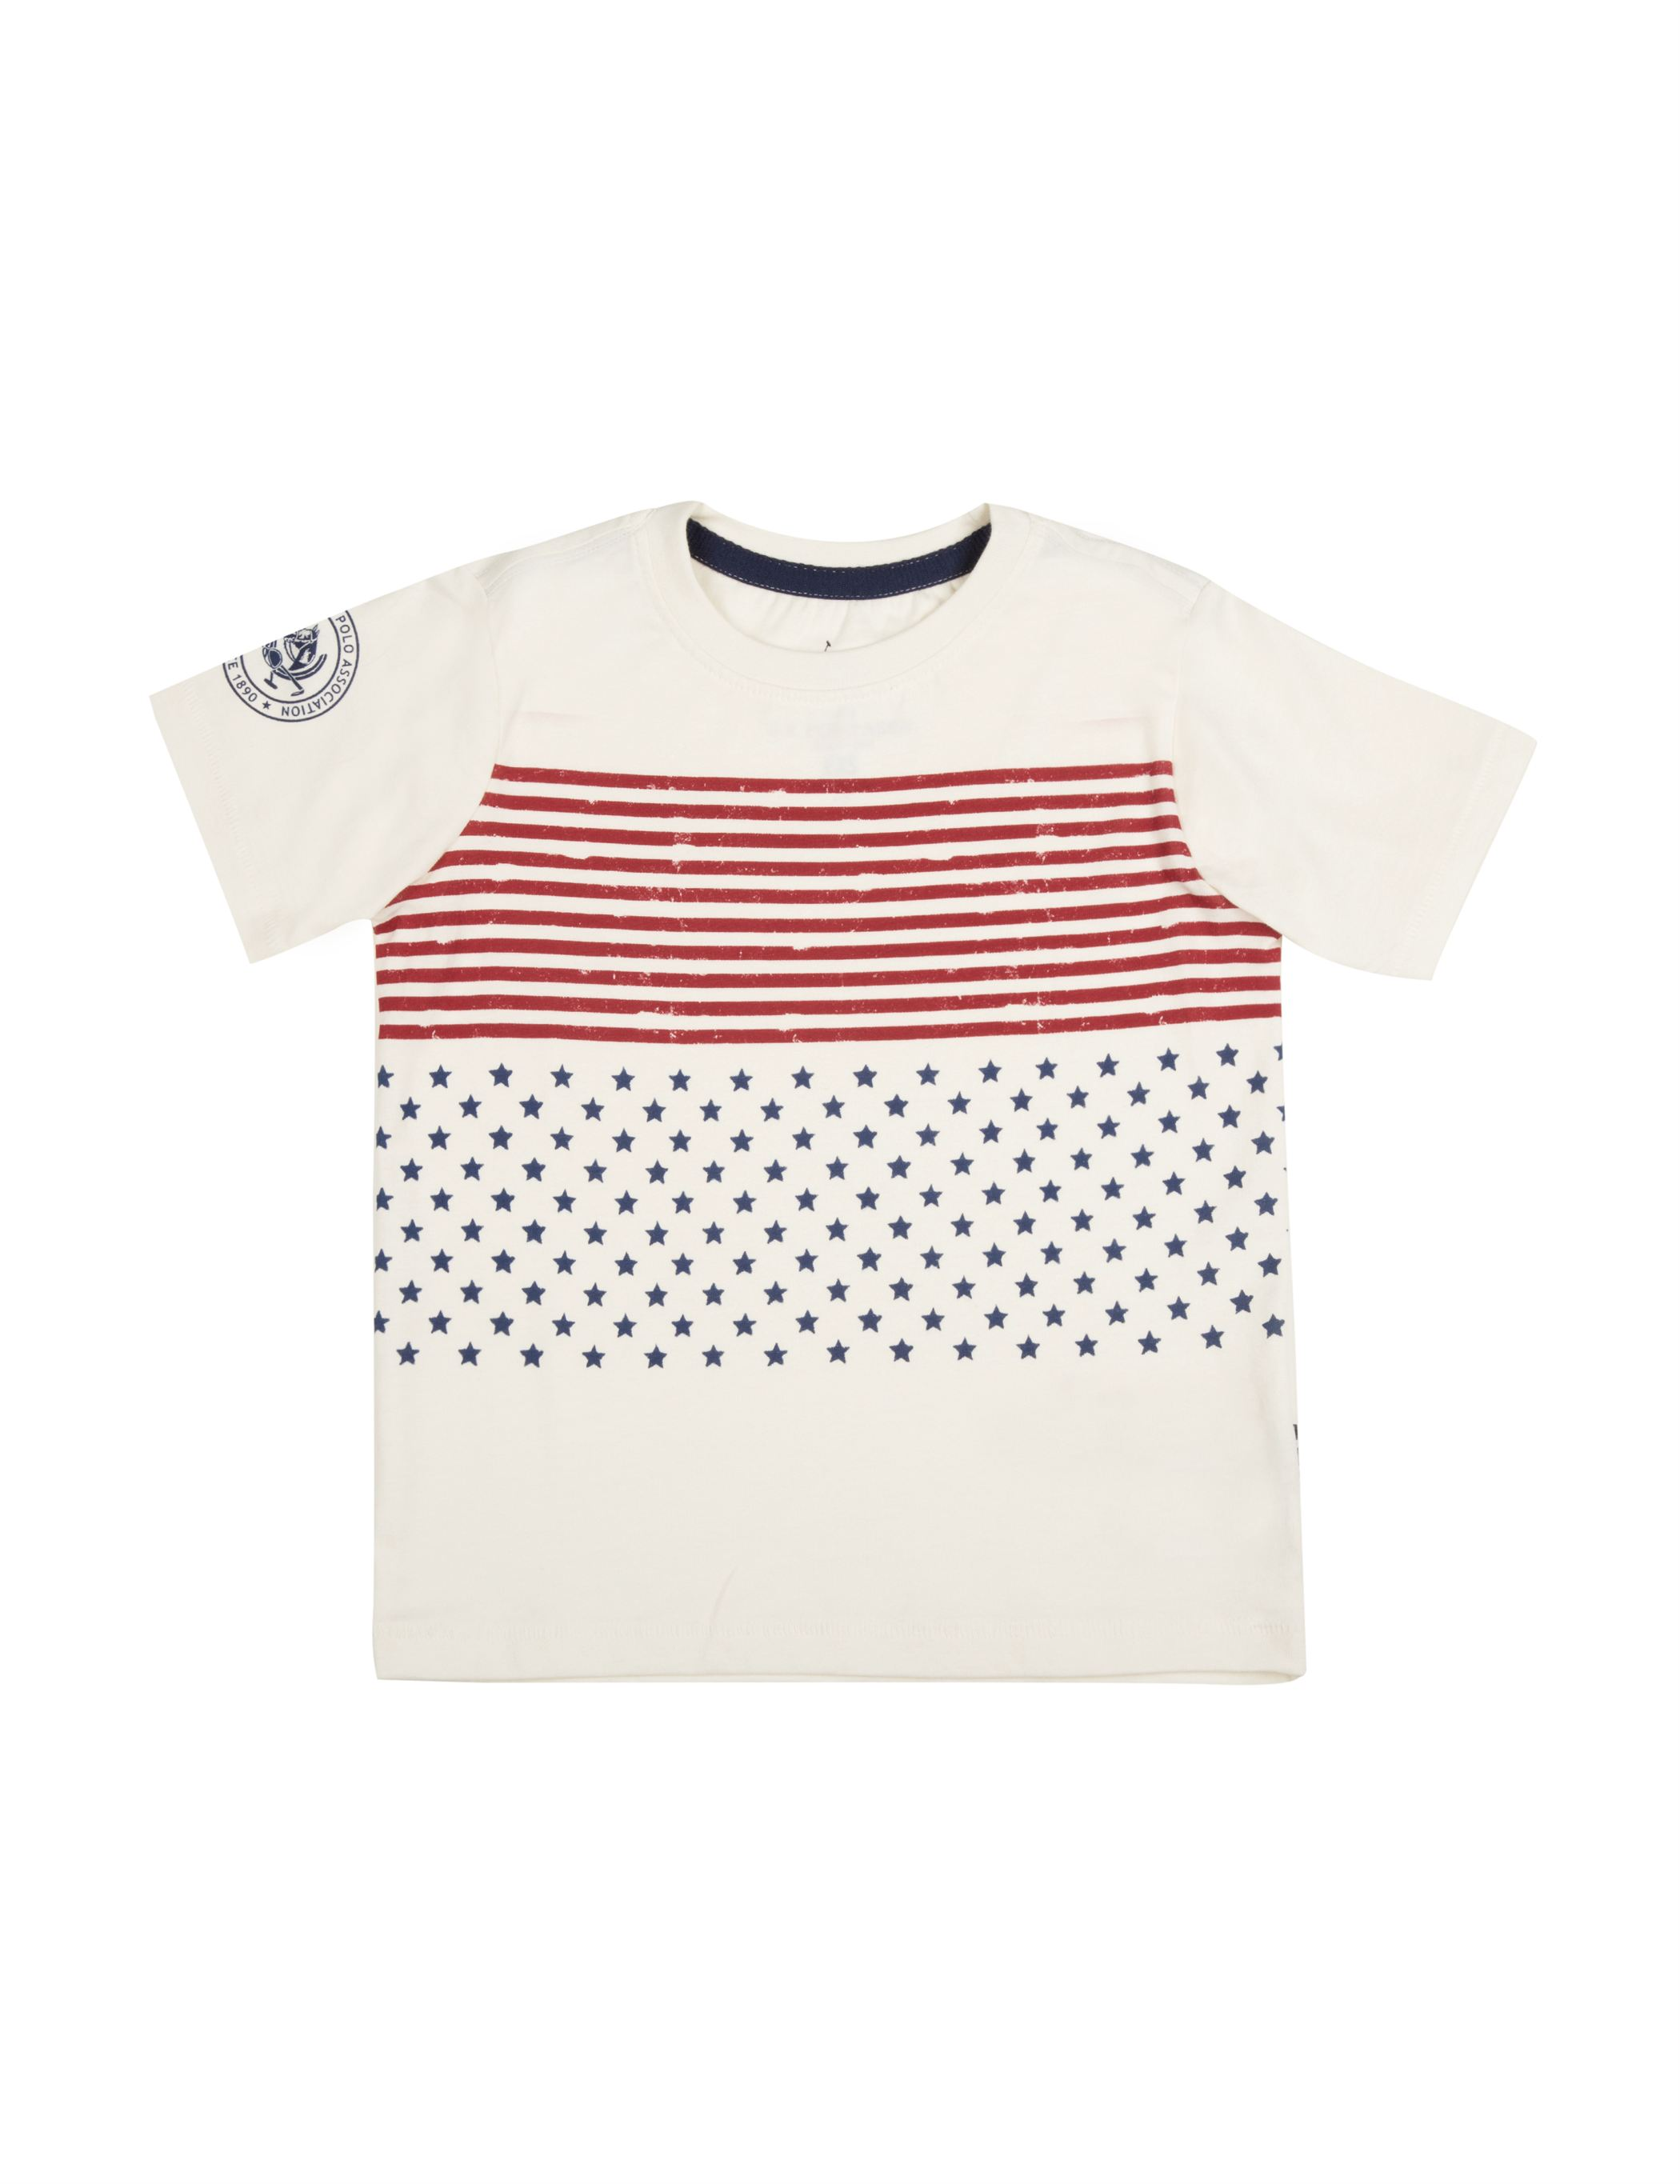 U.S. Polo Assn. Boys Cotton Printed T-Shirt